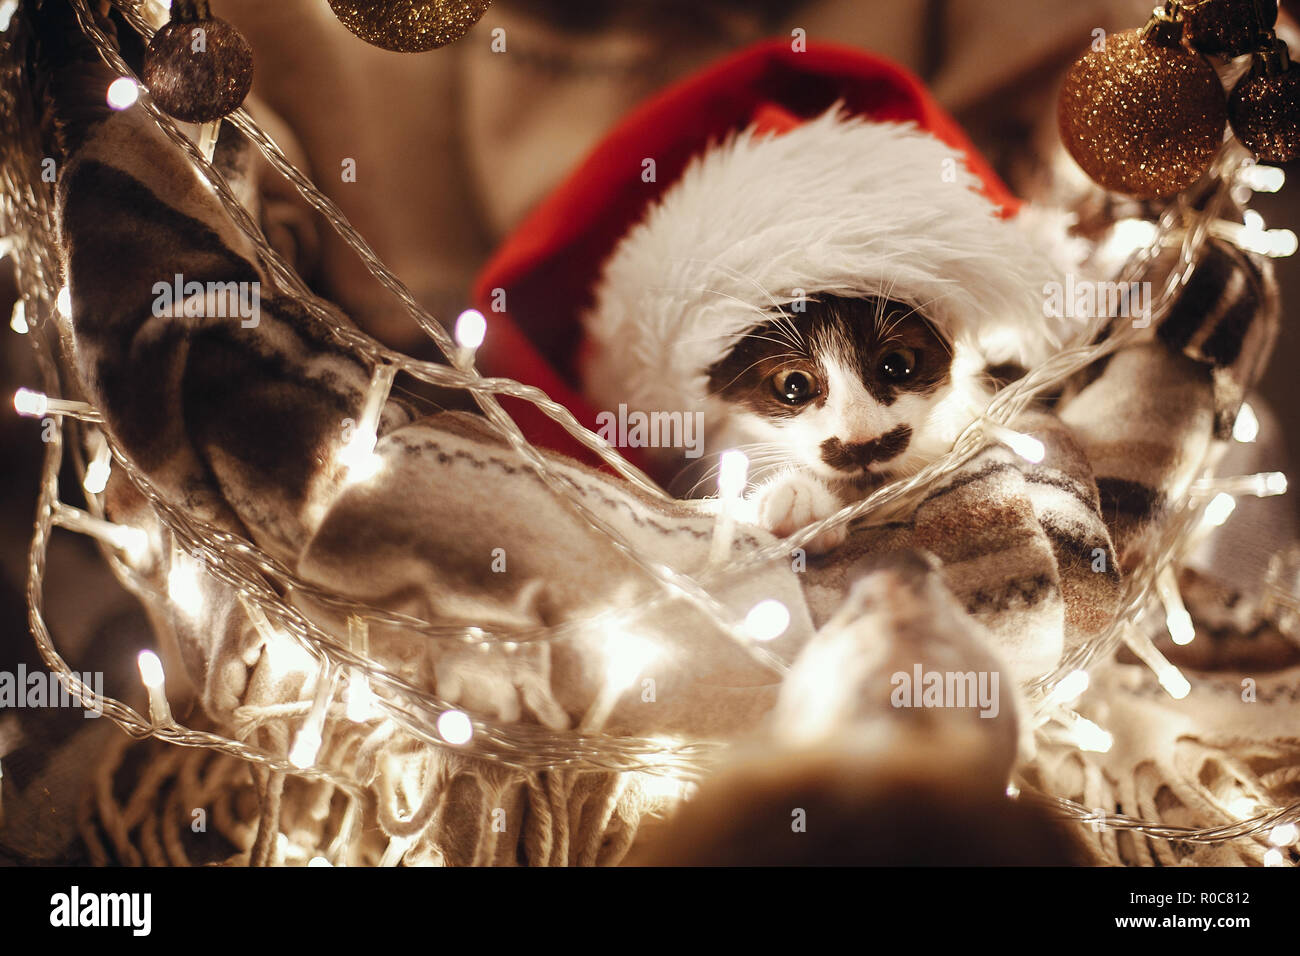 Cute kitty in santa hat sitting in basket with lights and ornaments under christmas tree in festive room, looking at dog friend. Merry Christmas conce - Stock Image